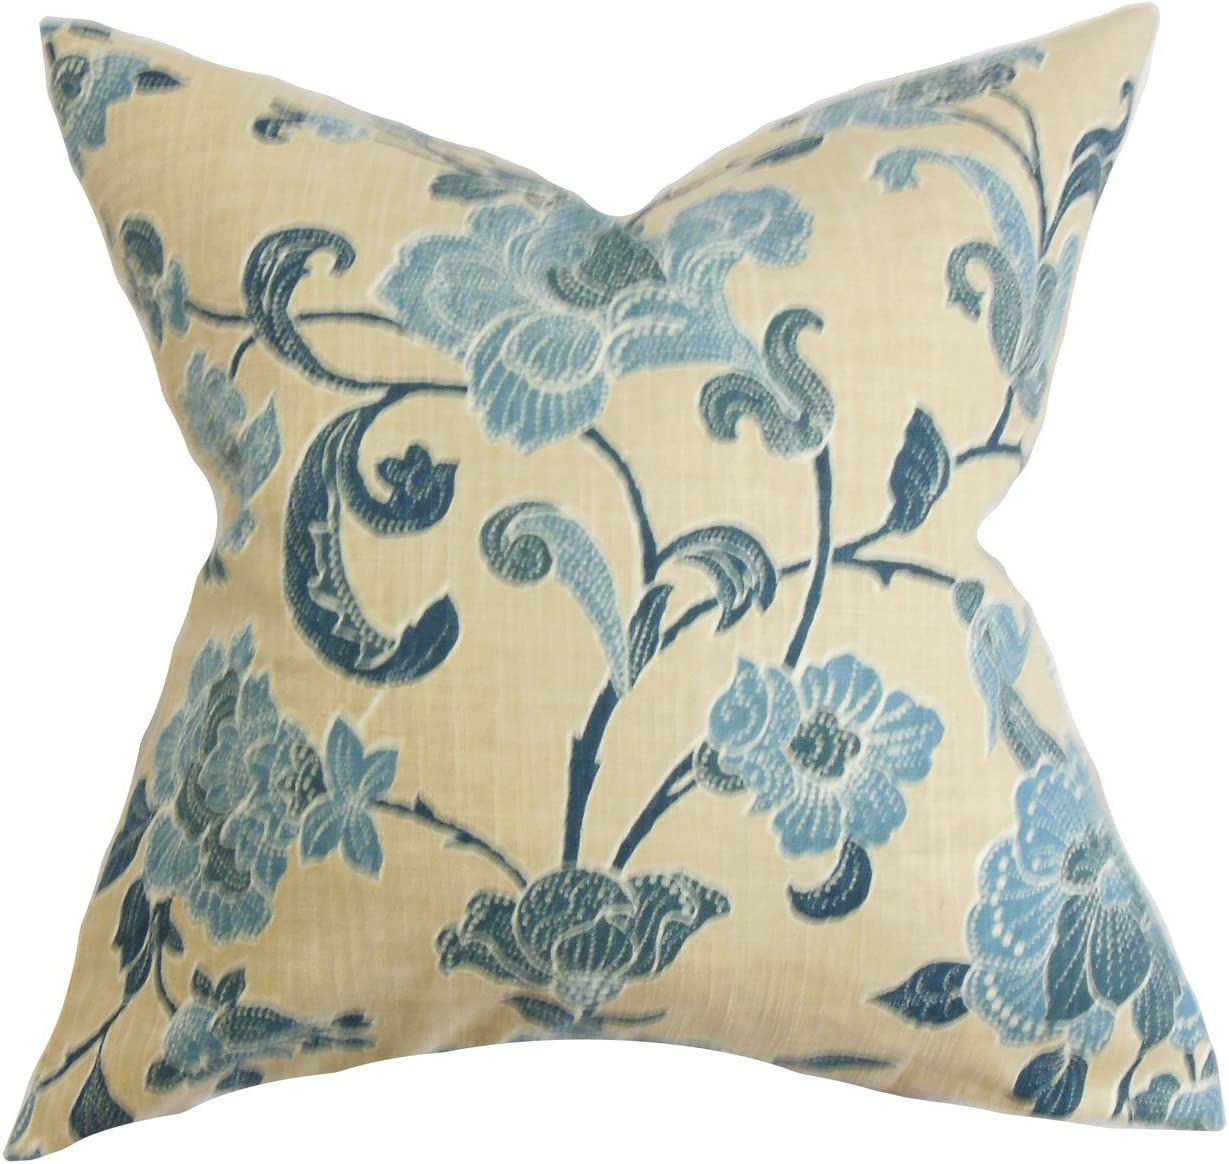 The Pillow Collection Duscha Floral Bedding Sham Blue Yellow European 26 X 26 Bedding Decorative Pillows Inserts Covers